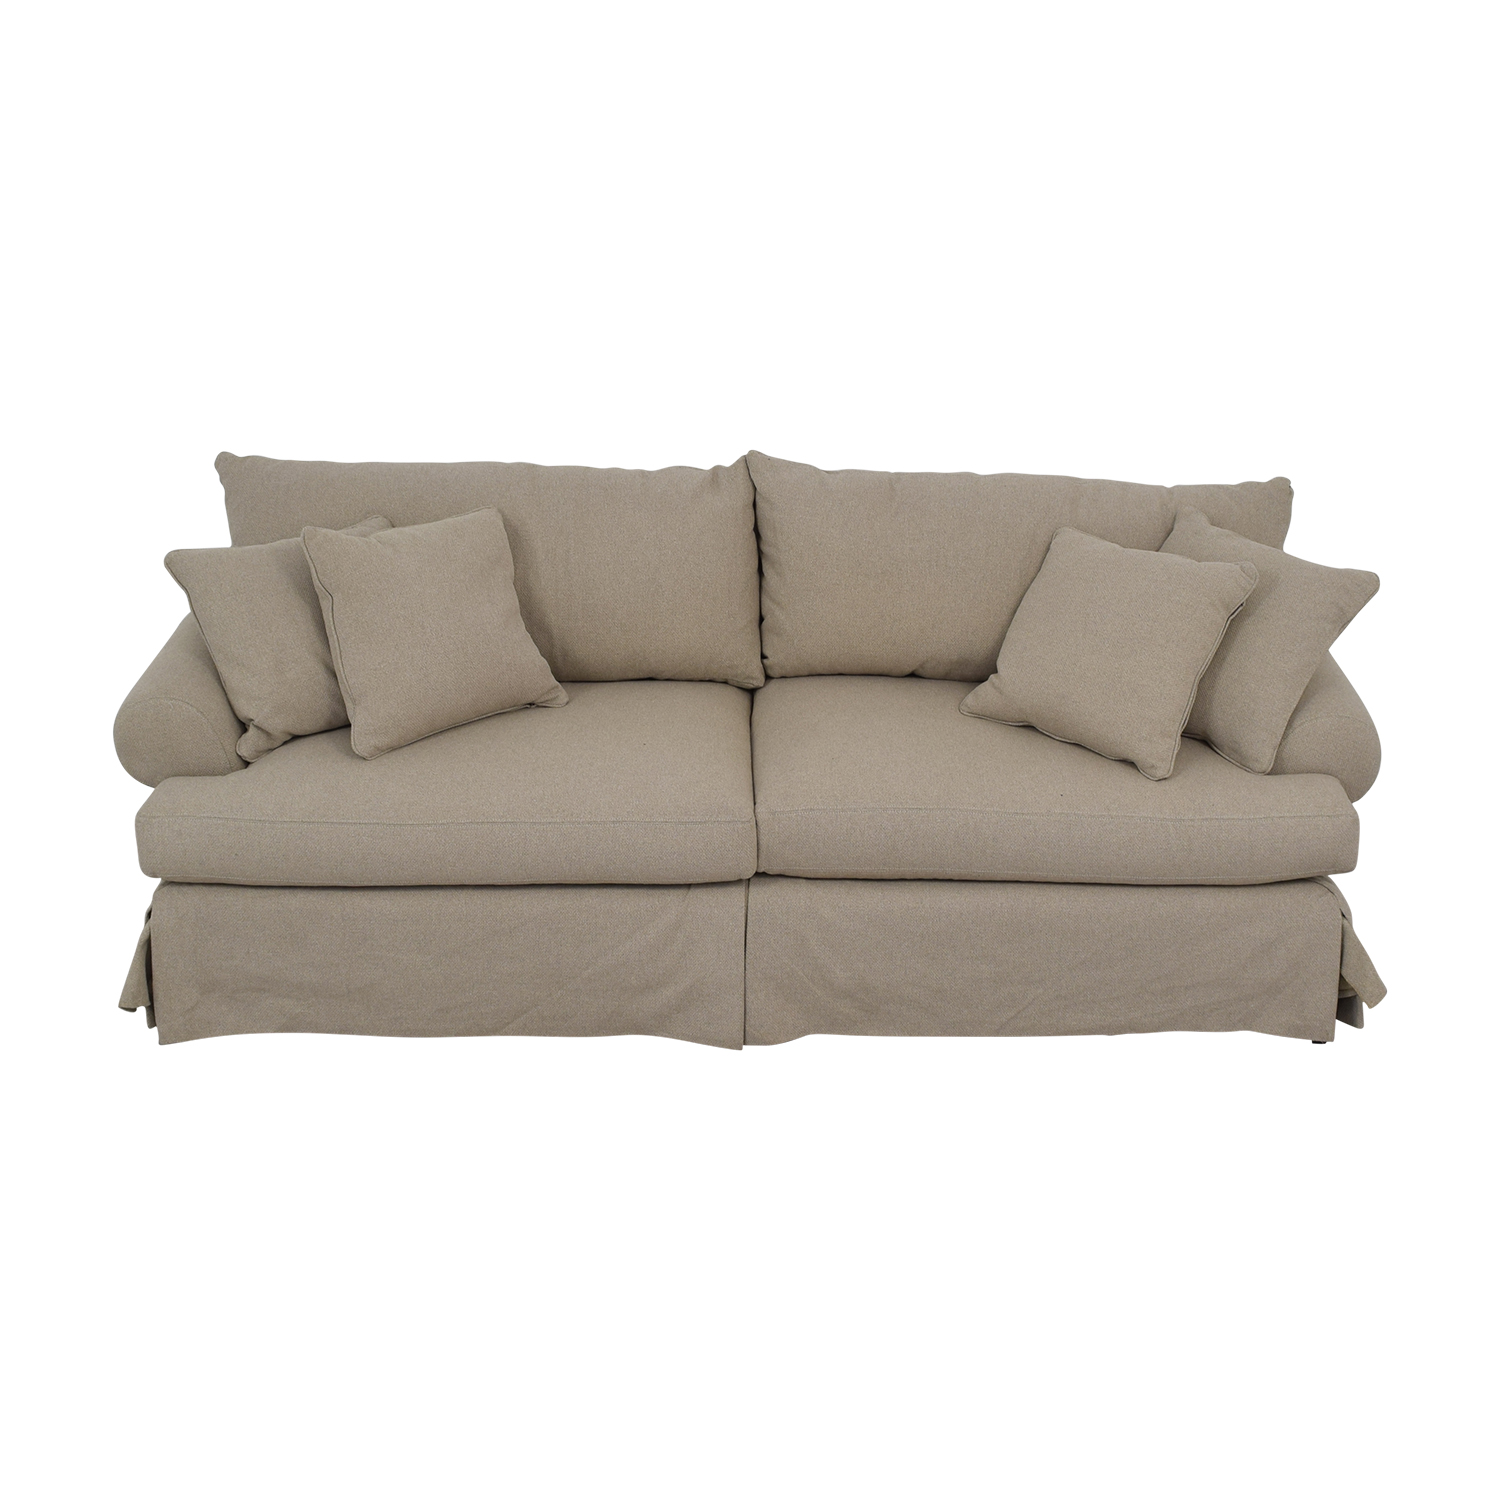 Neiman Marcus Keystone Grey Two-Cushion Sofa / Sofas